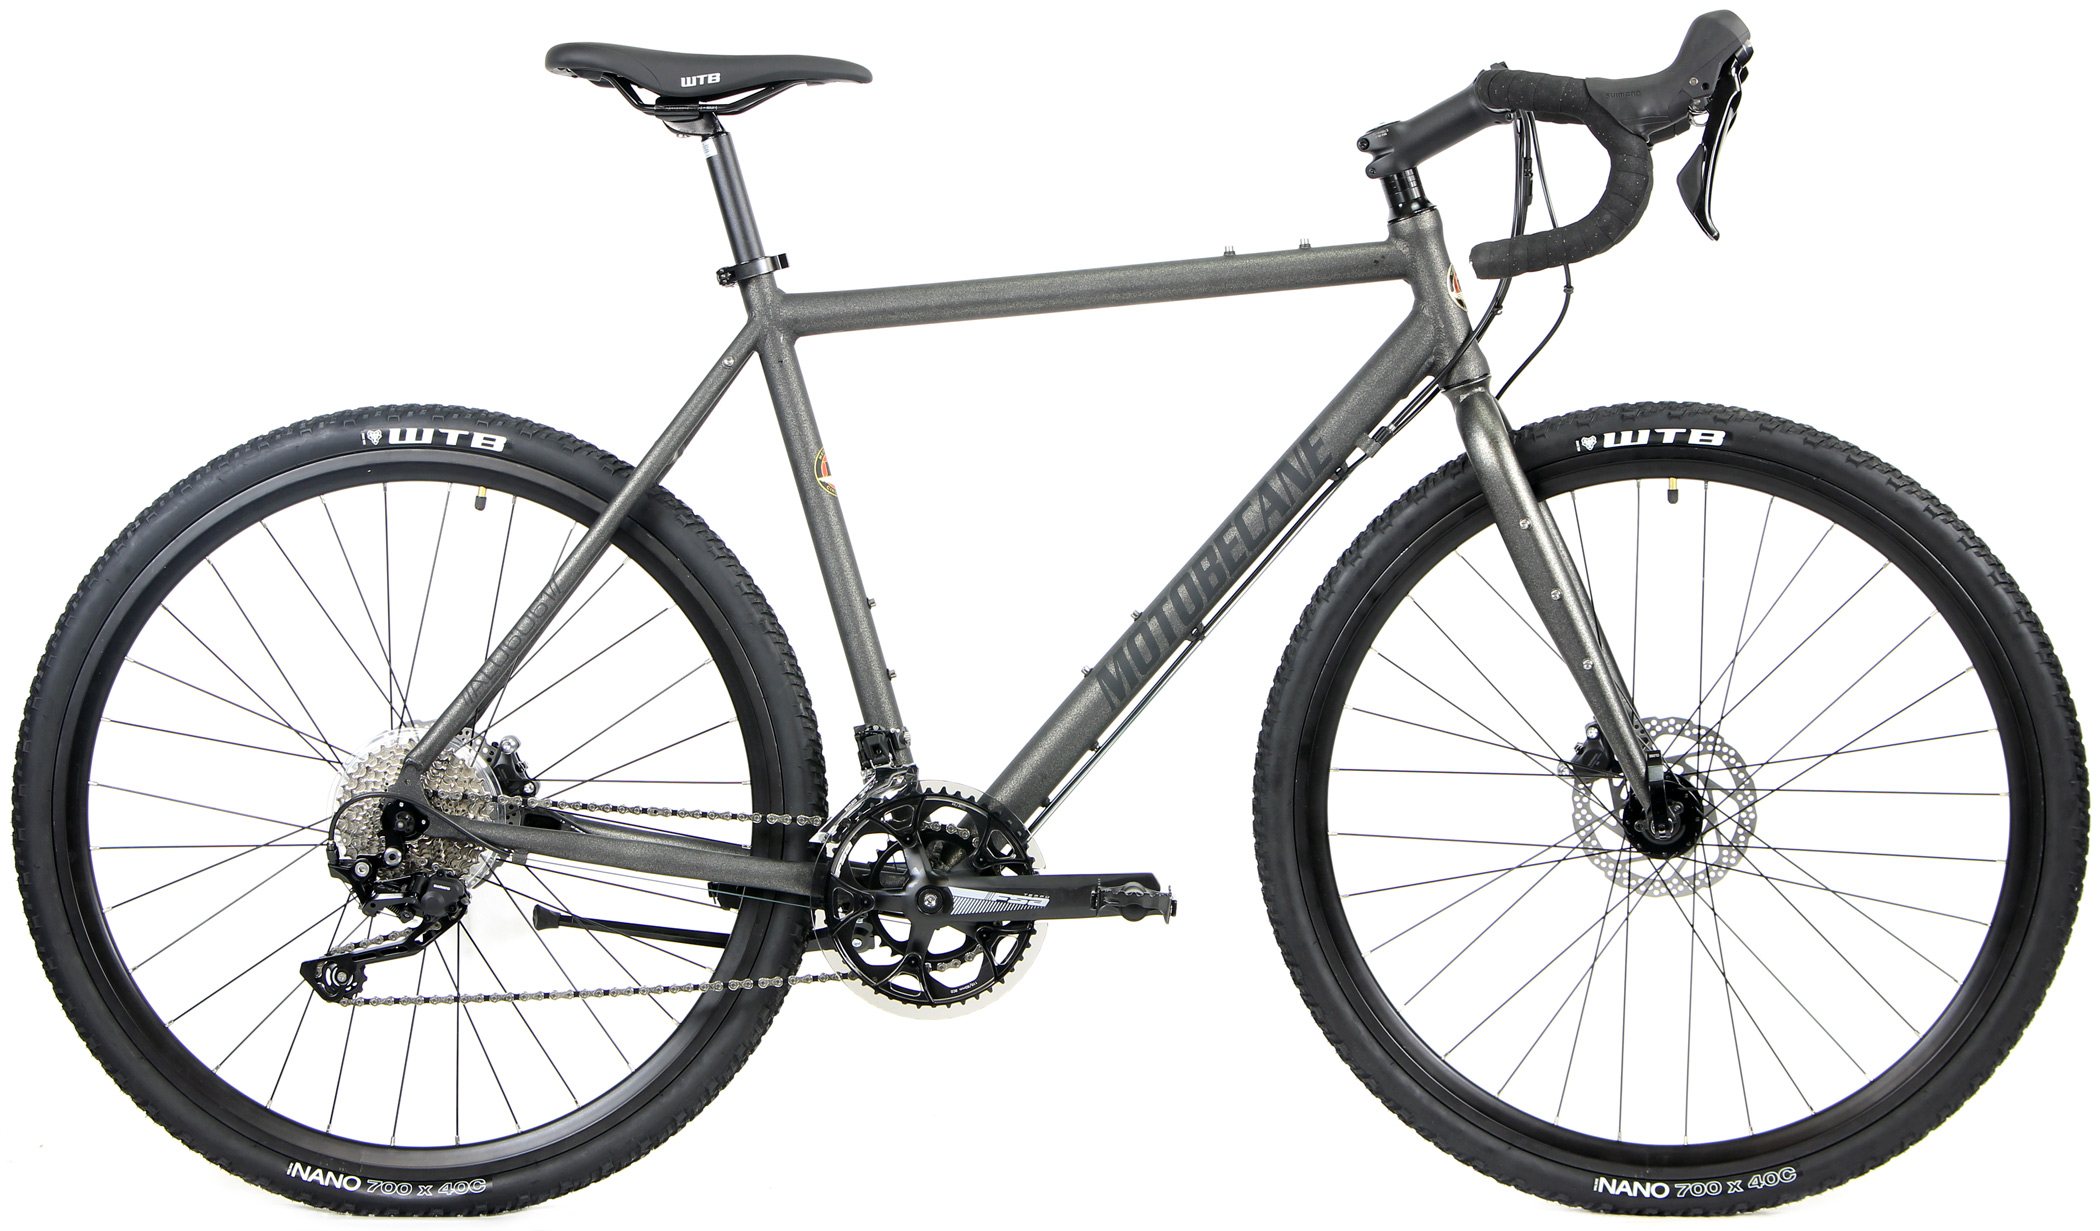 Save Up to 60% Off Shimano HYDRAULIC Disc Brake Road Bikes